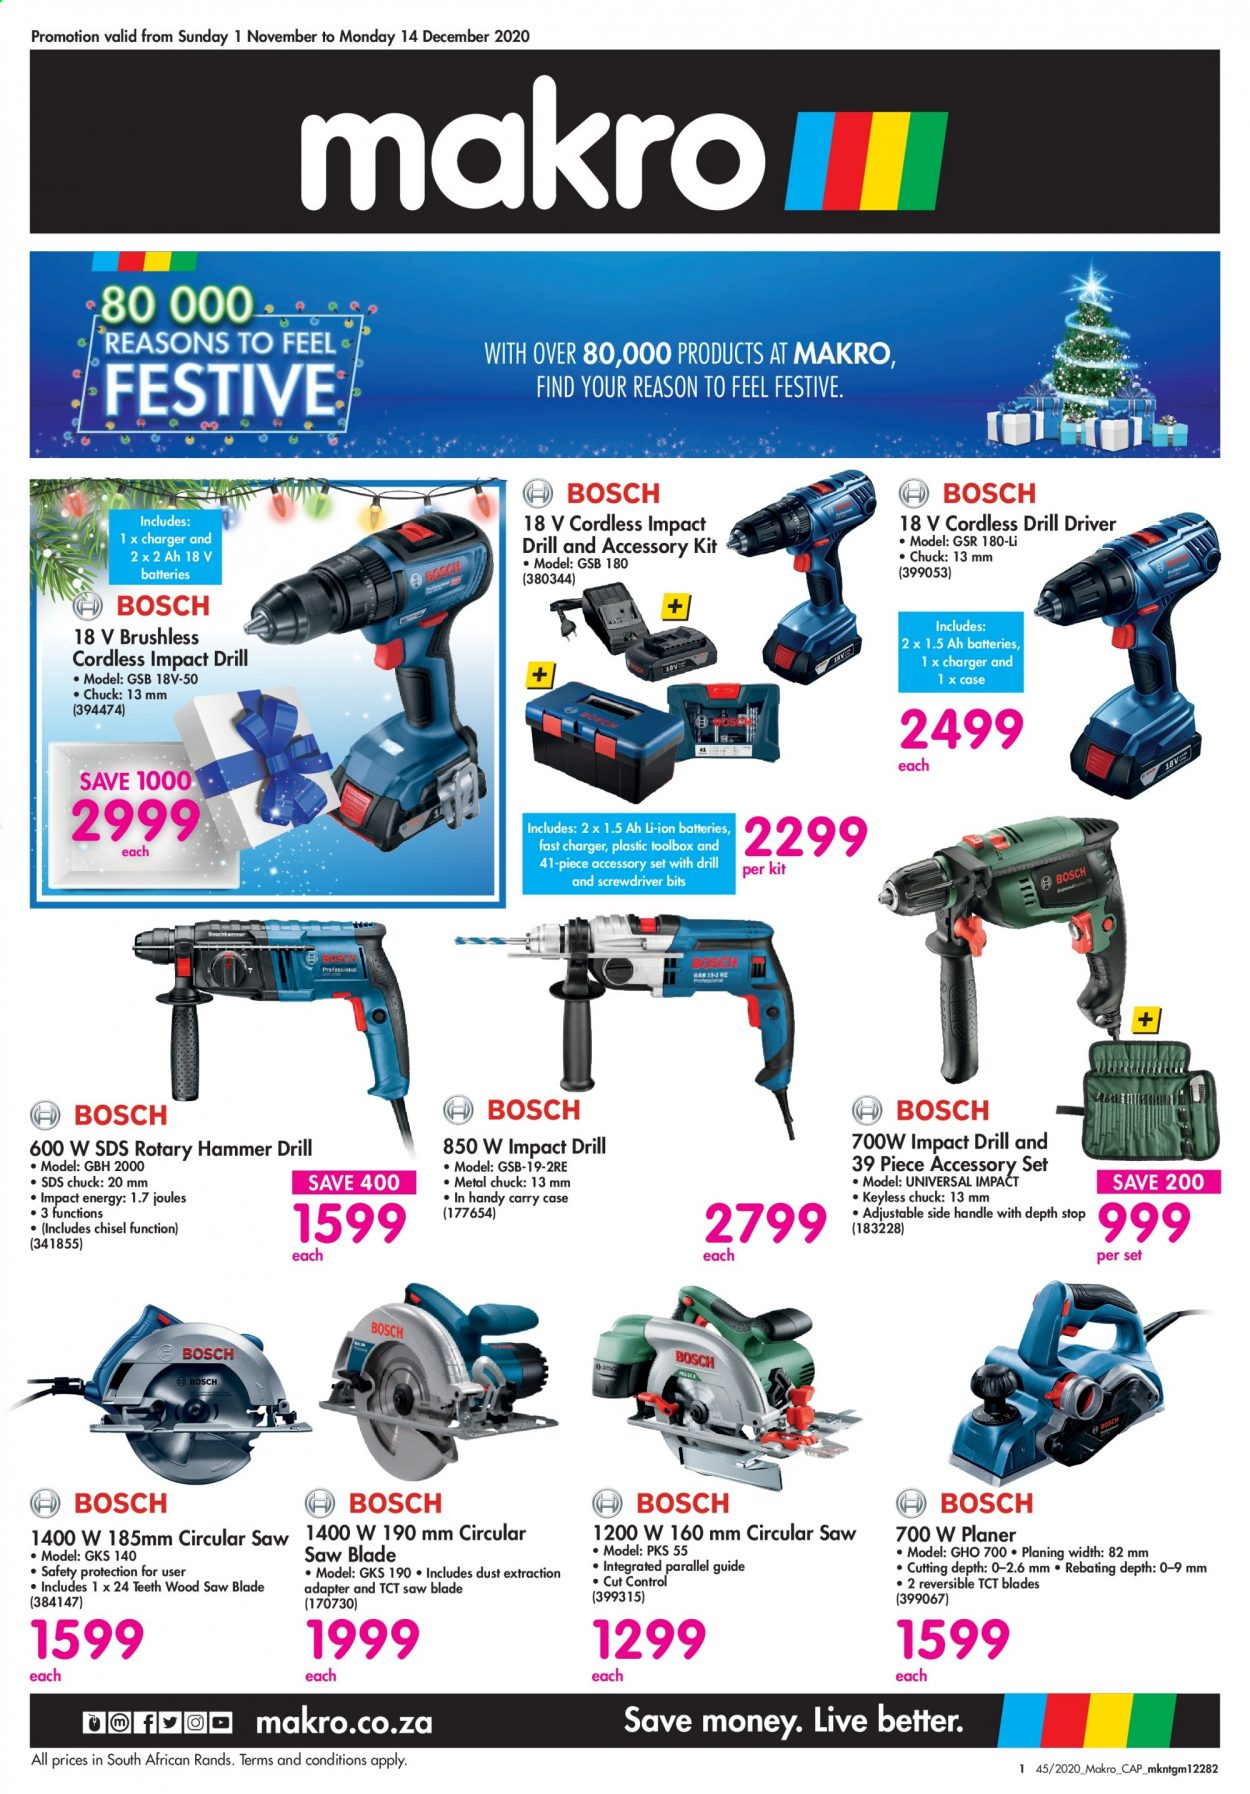 Makro catalogue  - 11.01.2020 - 12.14.2020 - Sales products - batteries, battery, cap, drill, screwdriver, screwdriver bits, charger, hammer, circular saw, blade, saw, control. Page 1.